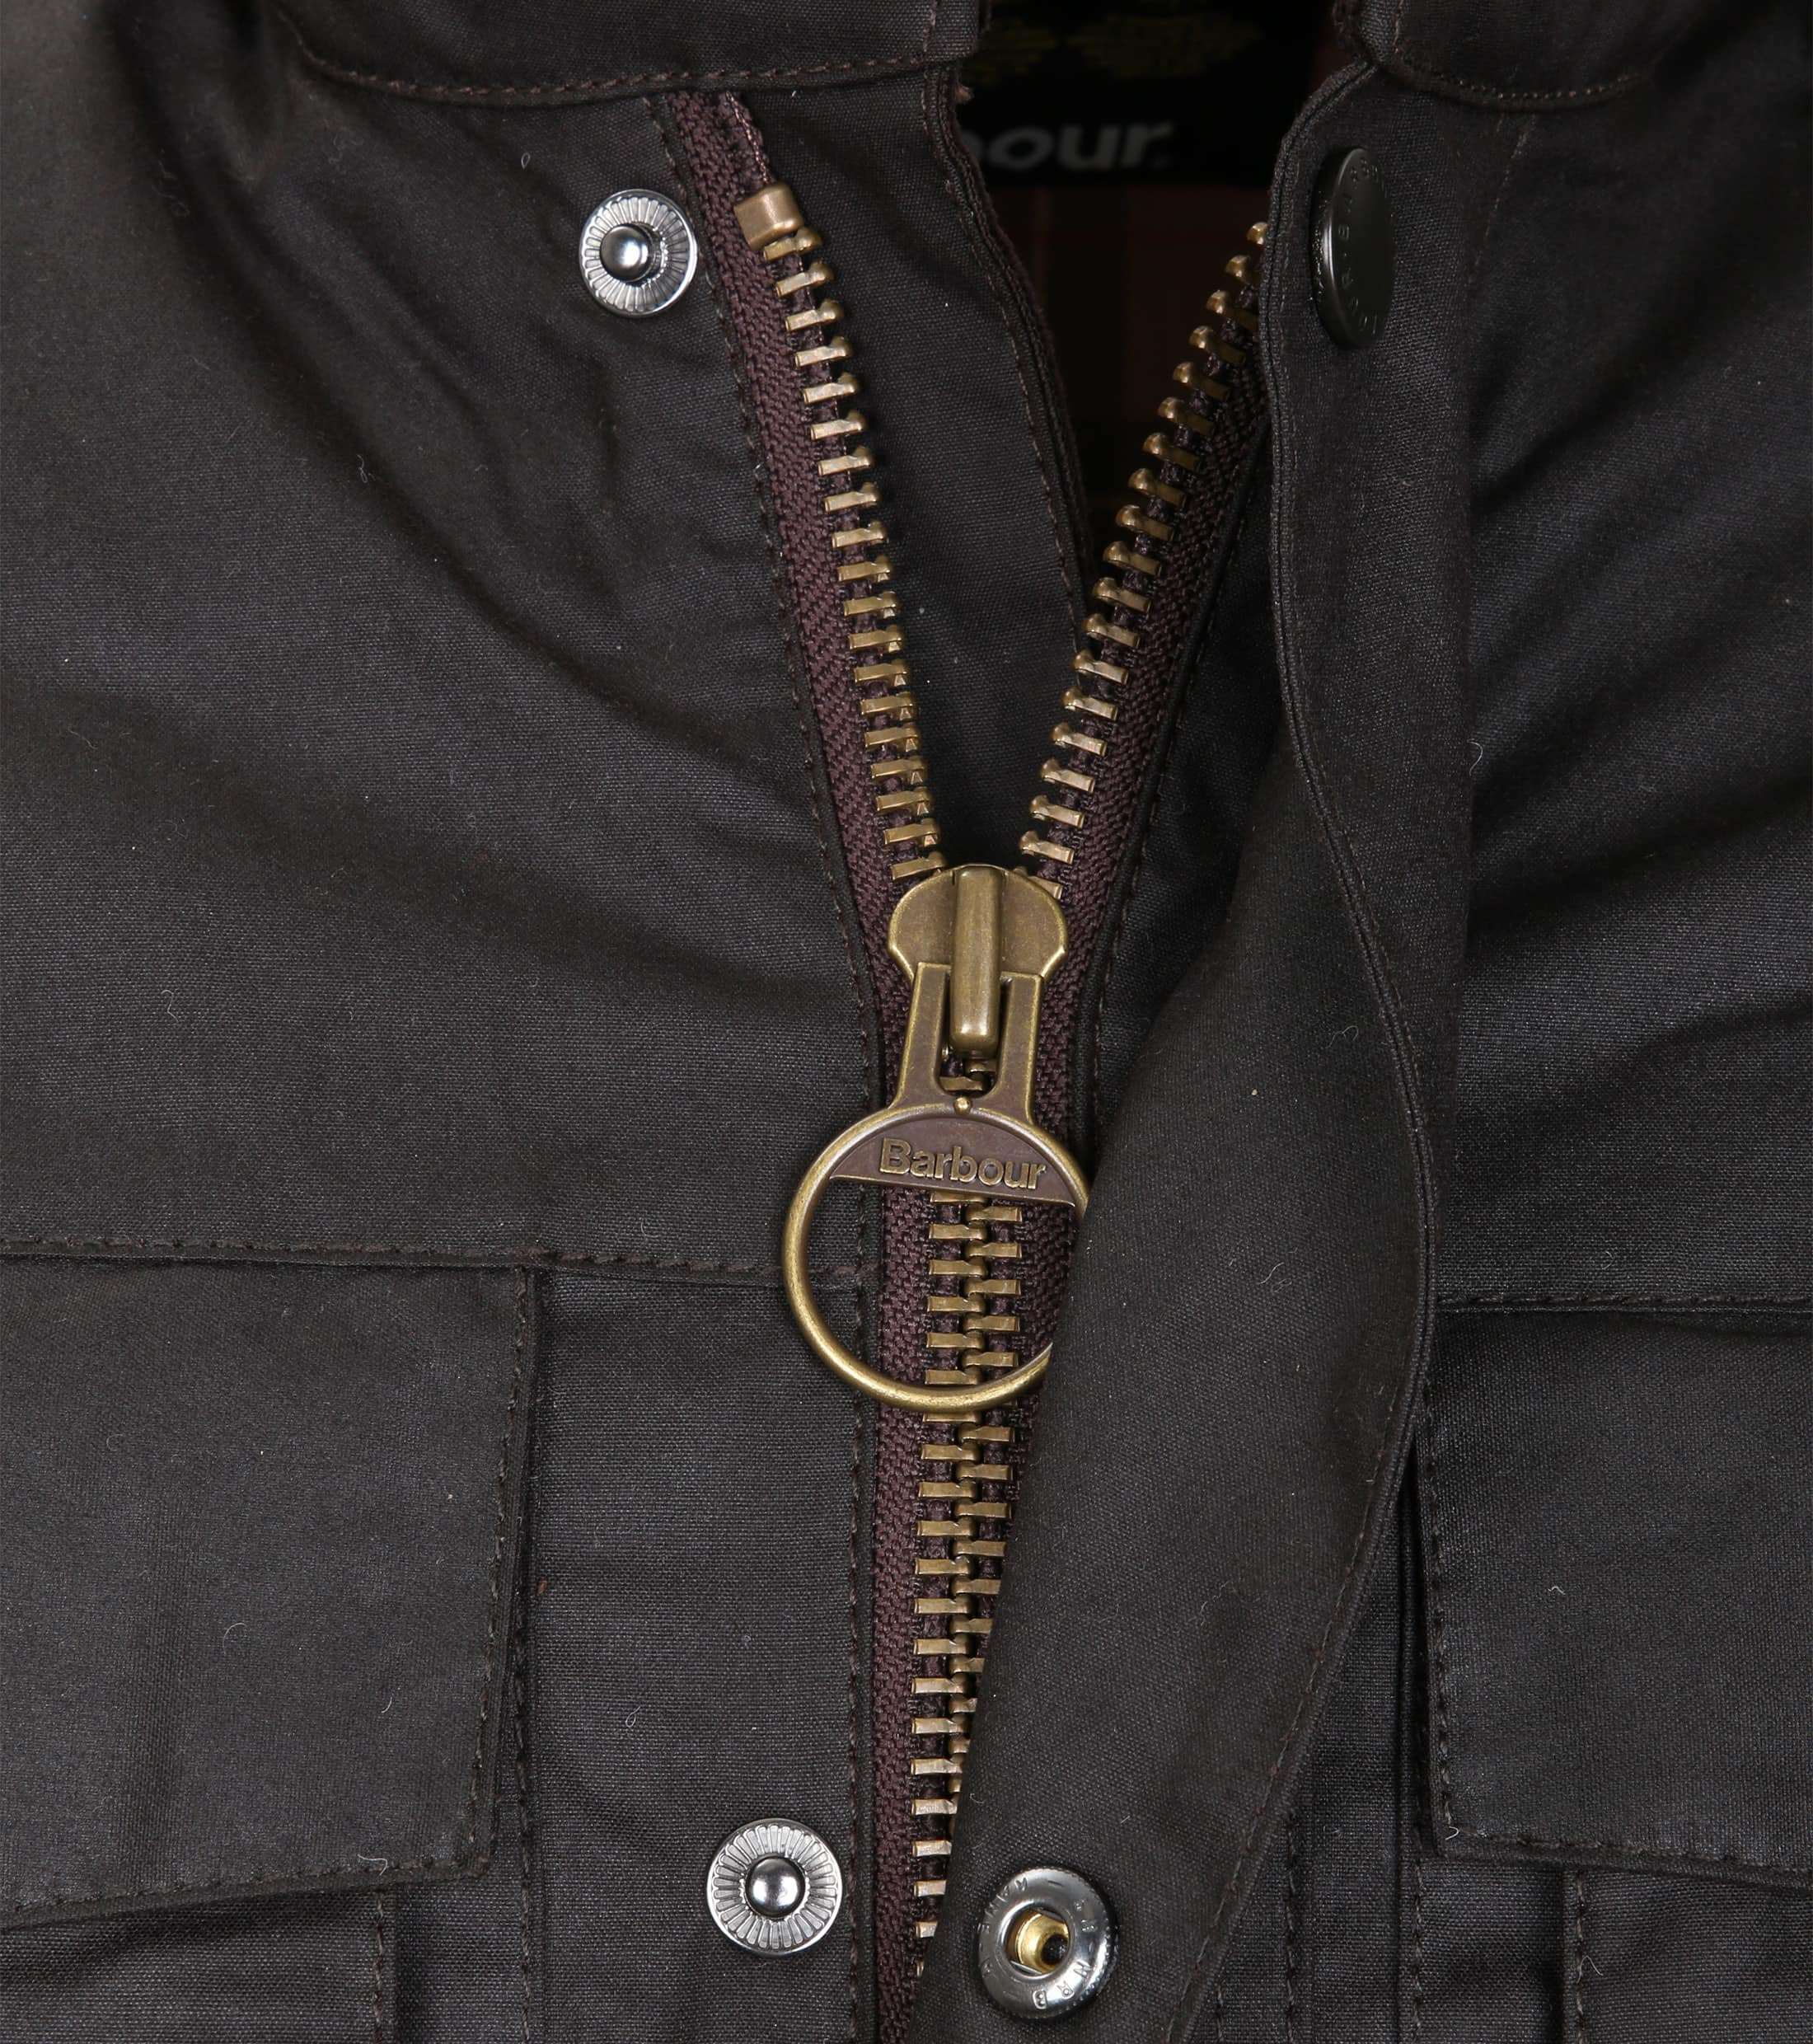 Barbour Waxjas Corbridge Rustic foto 2